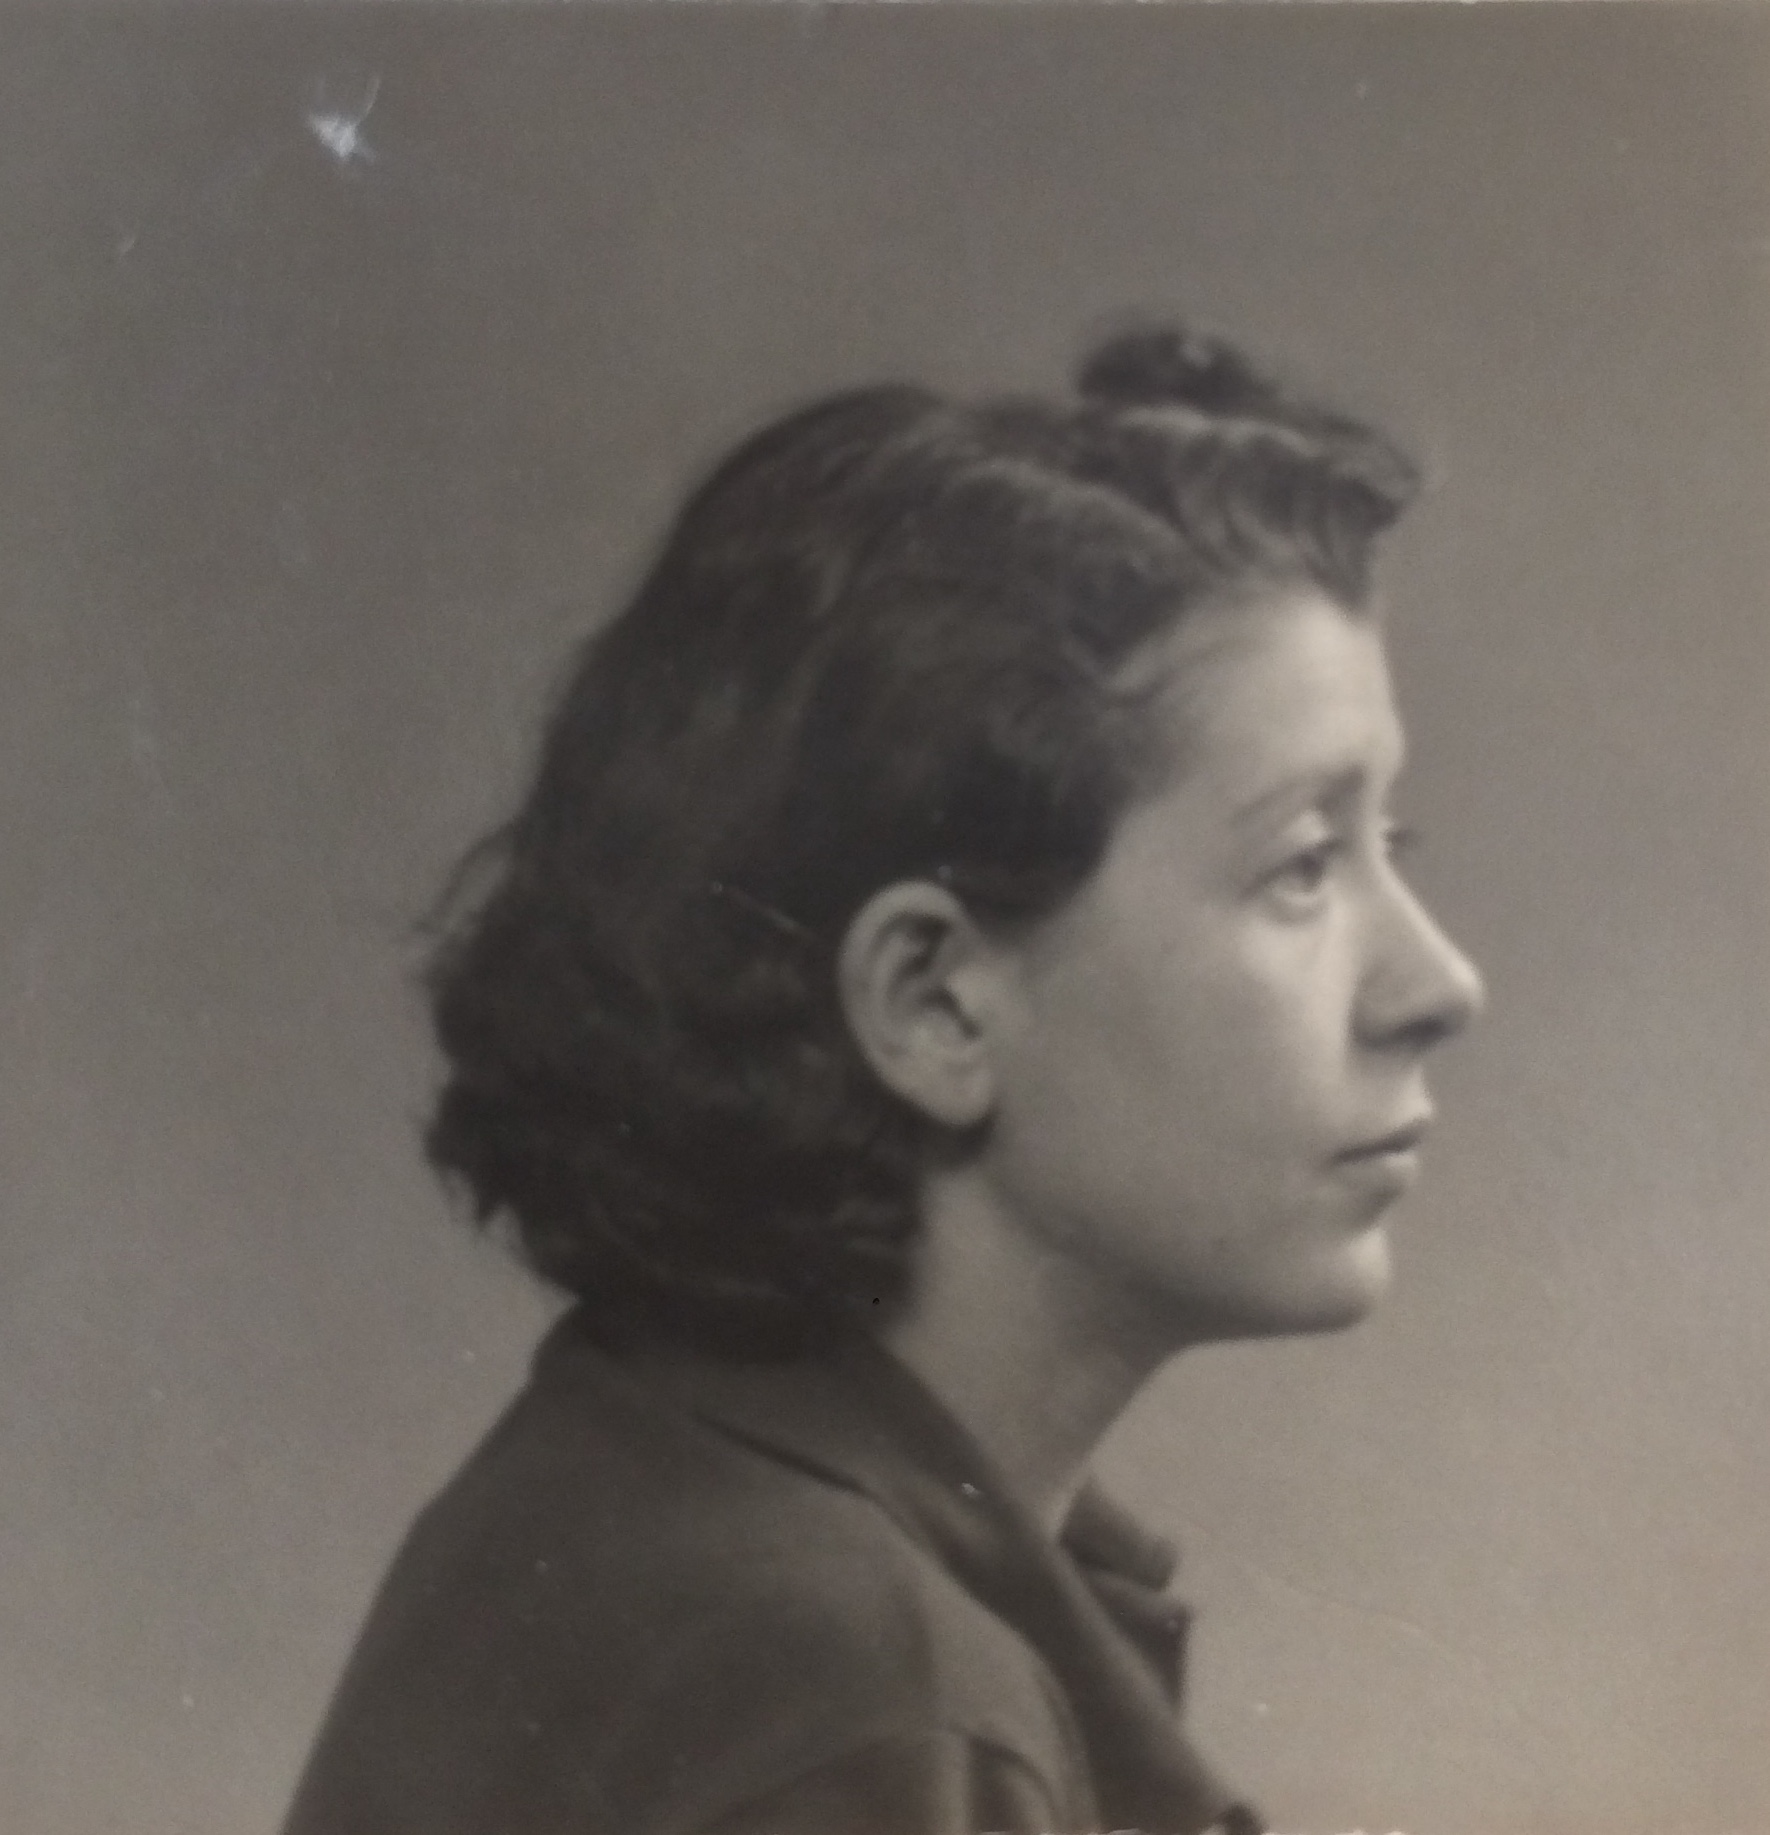 Nelly BARDACH 1938 Dossier de la Police de Sûreté [Archives Nationales, 199404340/086]